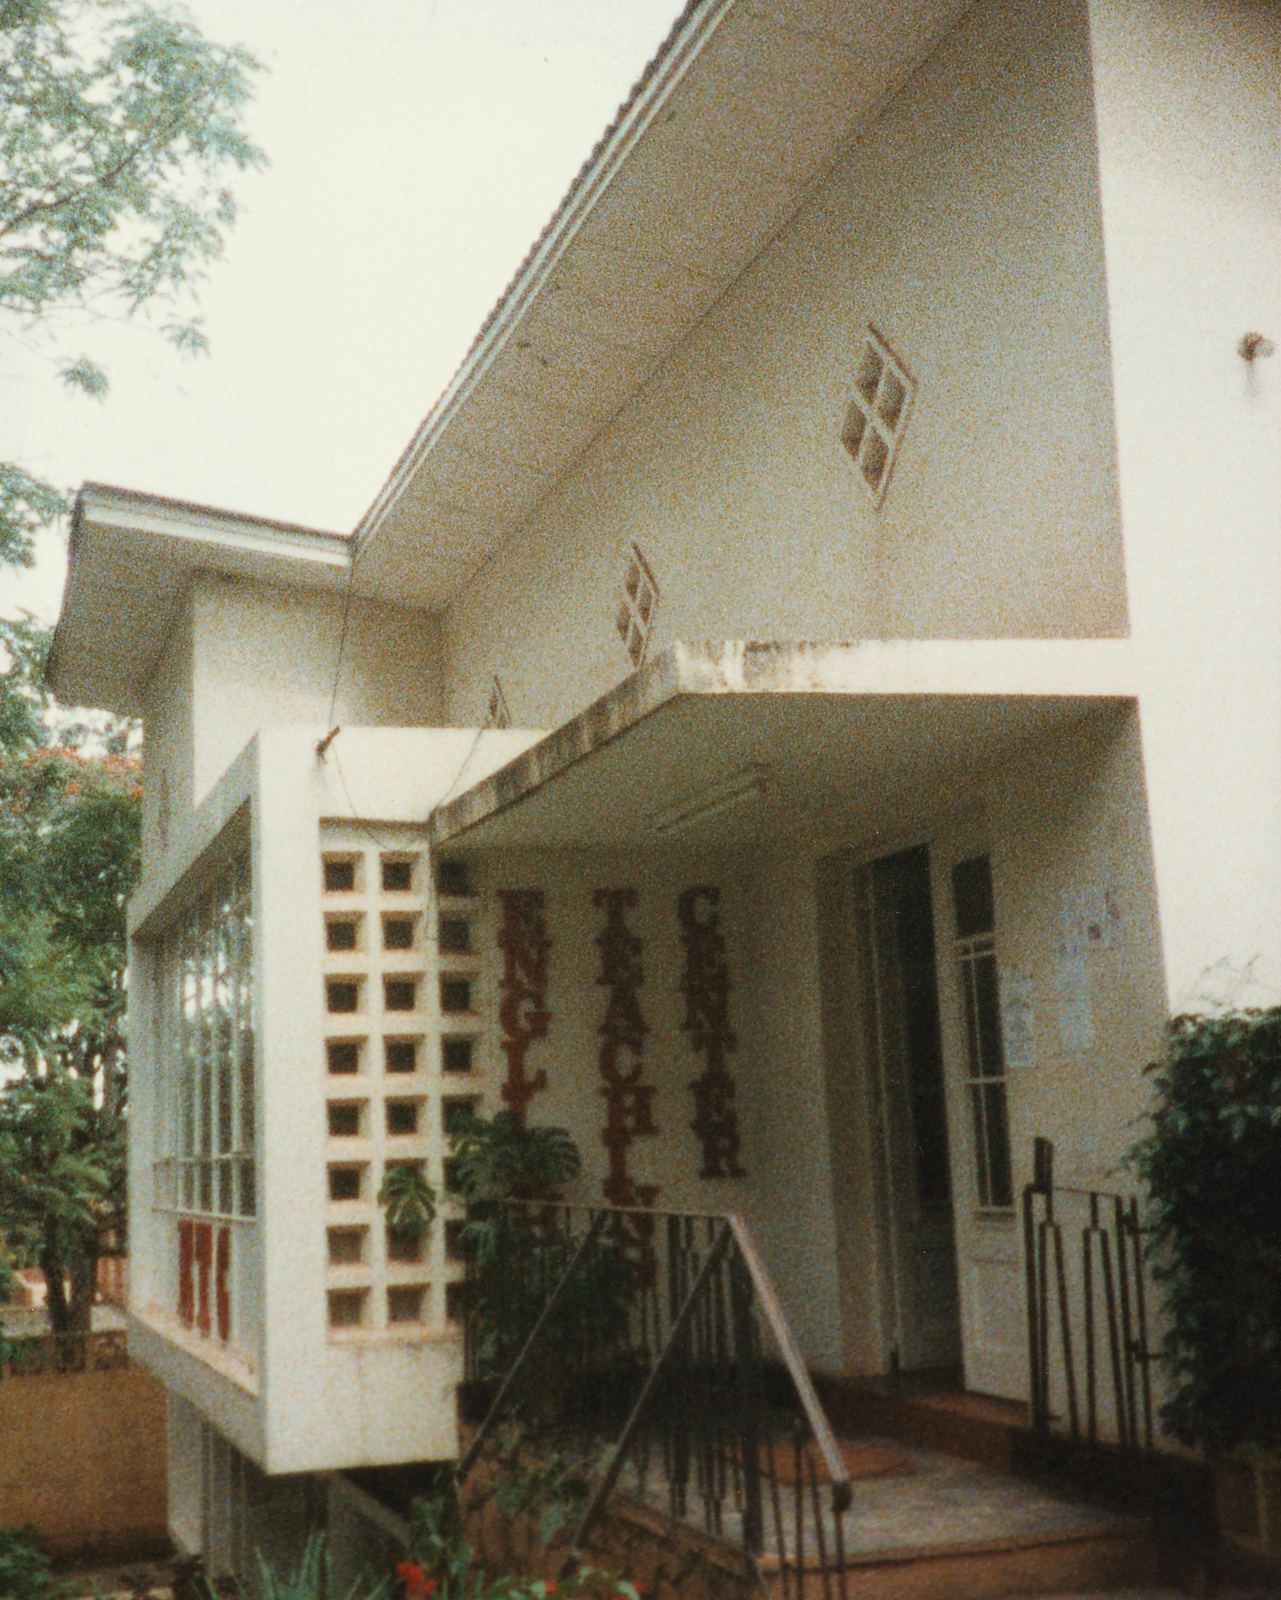 Kigali - Recreation/Community Center/Gym/Theater - 1987